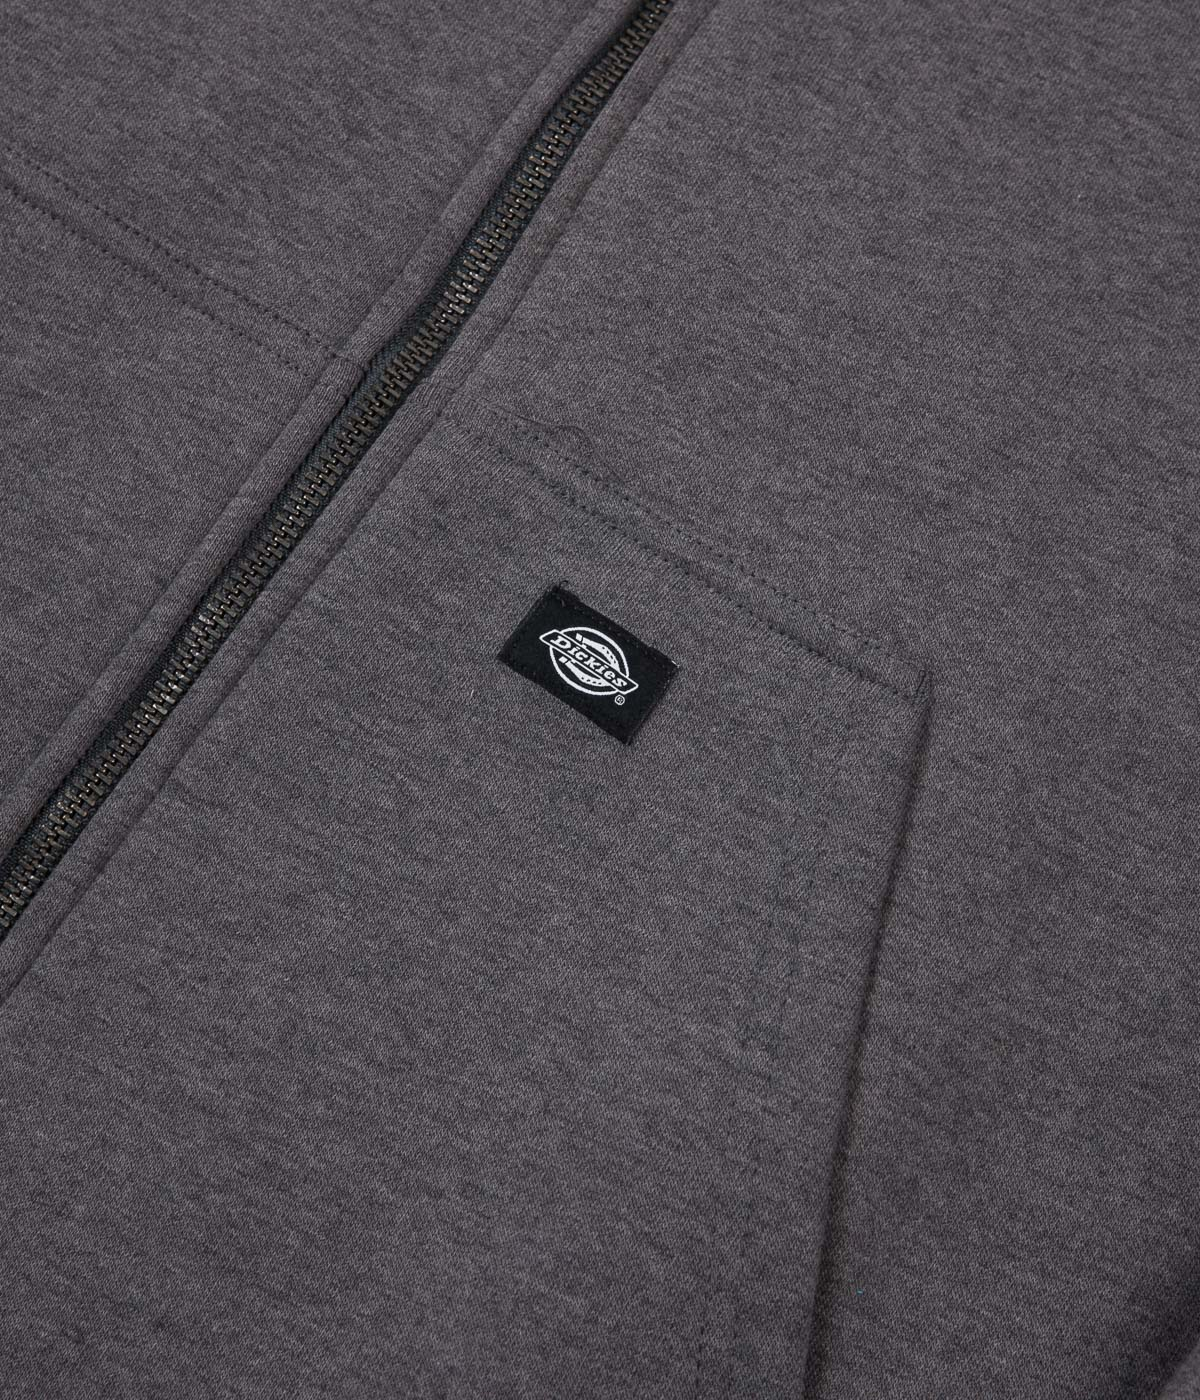 Dickies Sherpa Fleece Jacket - Dark Heather Grey